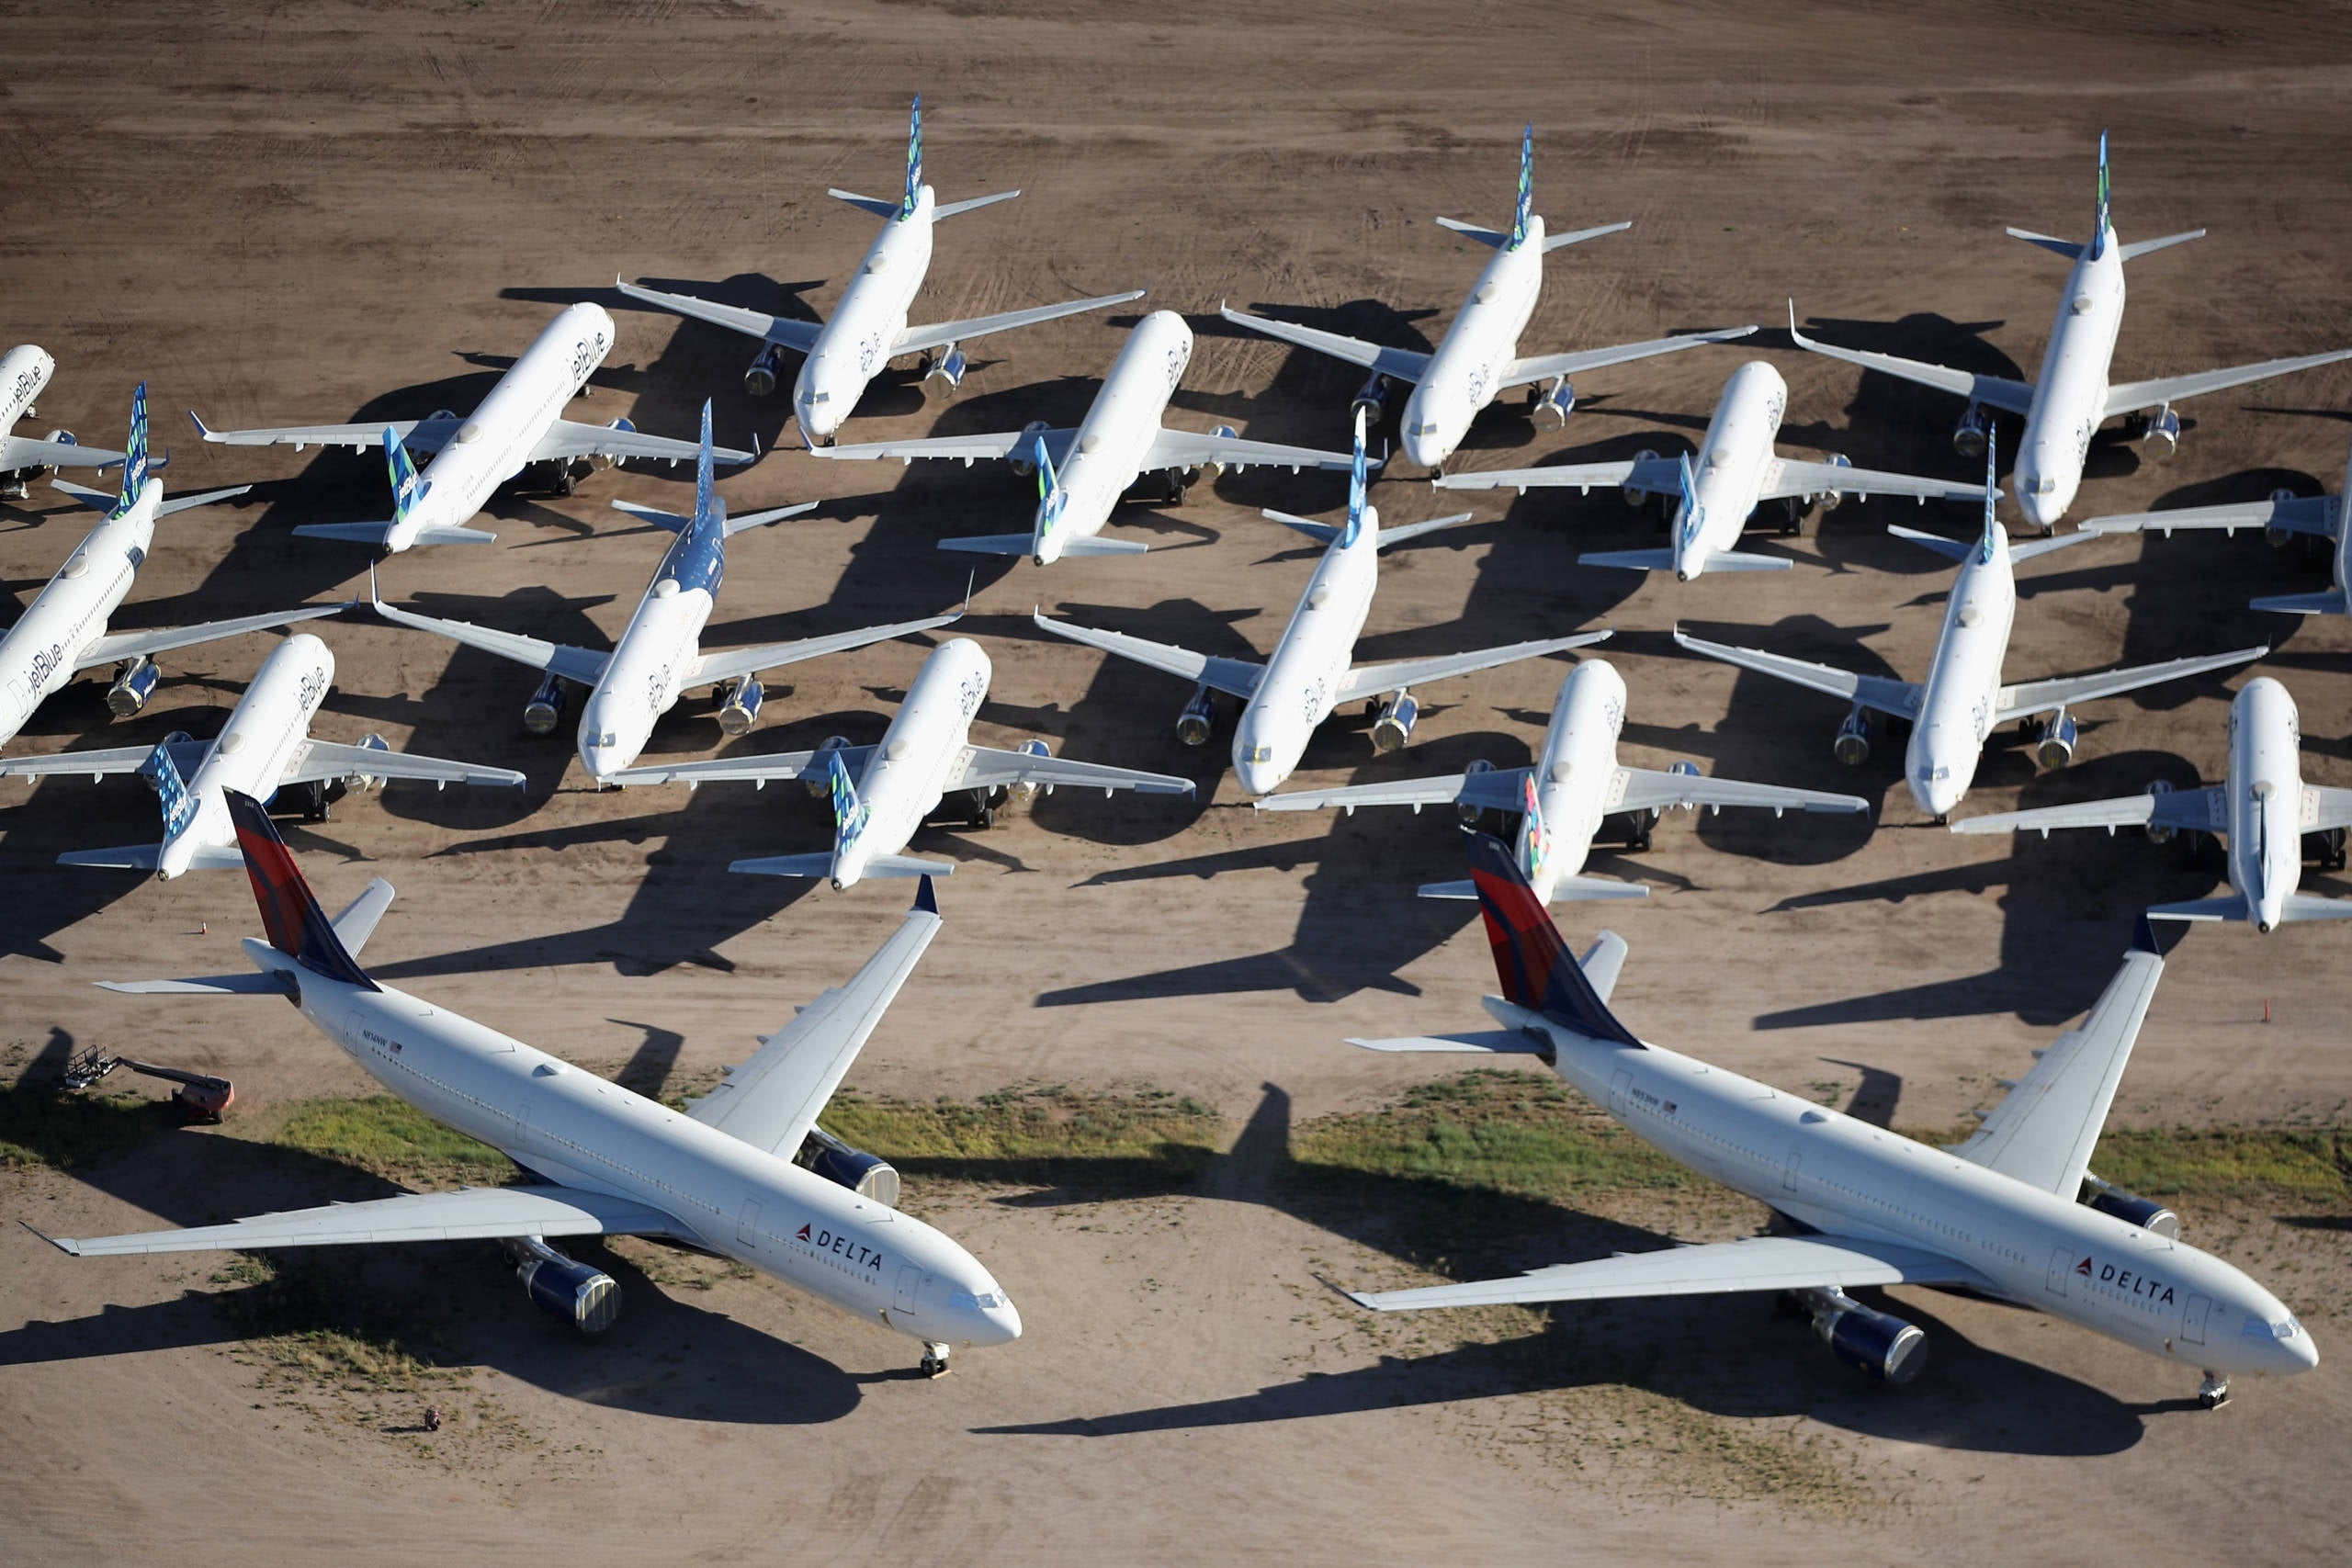 Global air travel unlikely to recover until 2024, airline group predicts